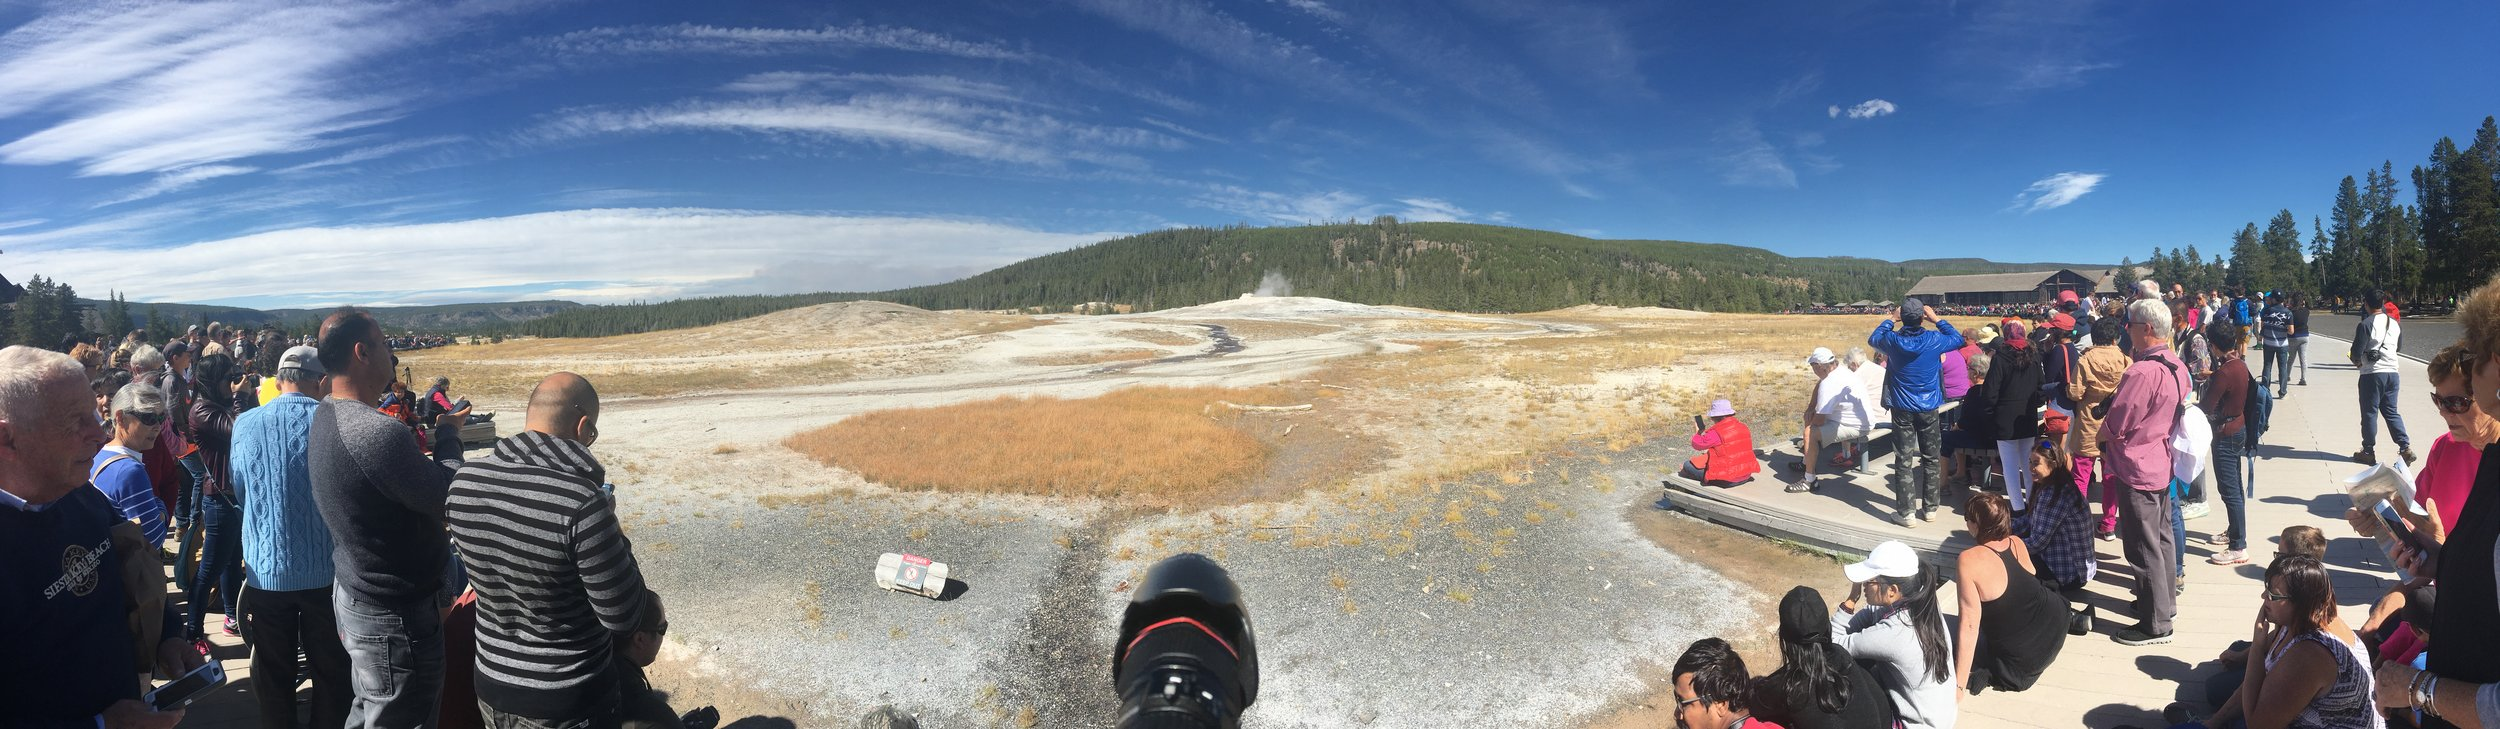 Panorama of the crowd ready for Old Faithful.